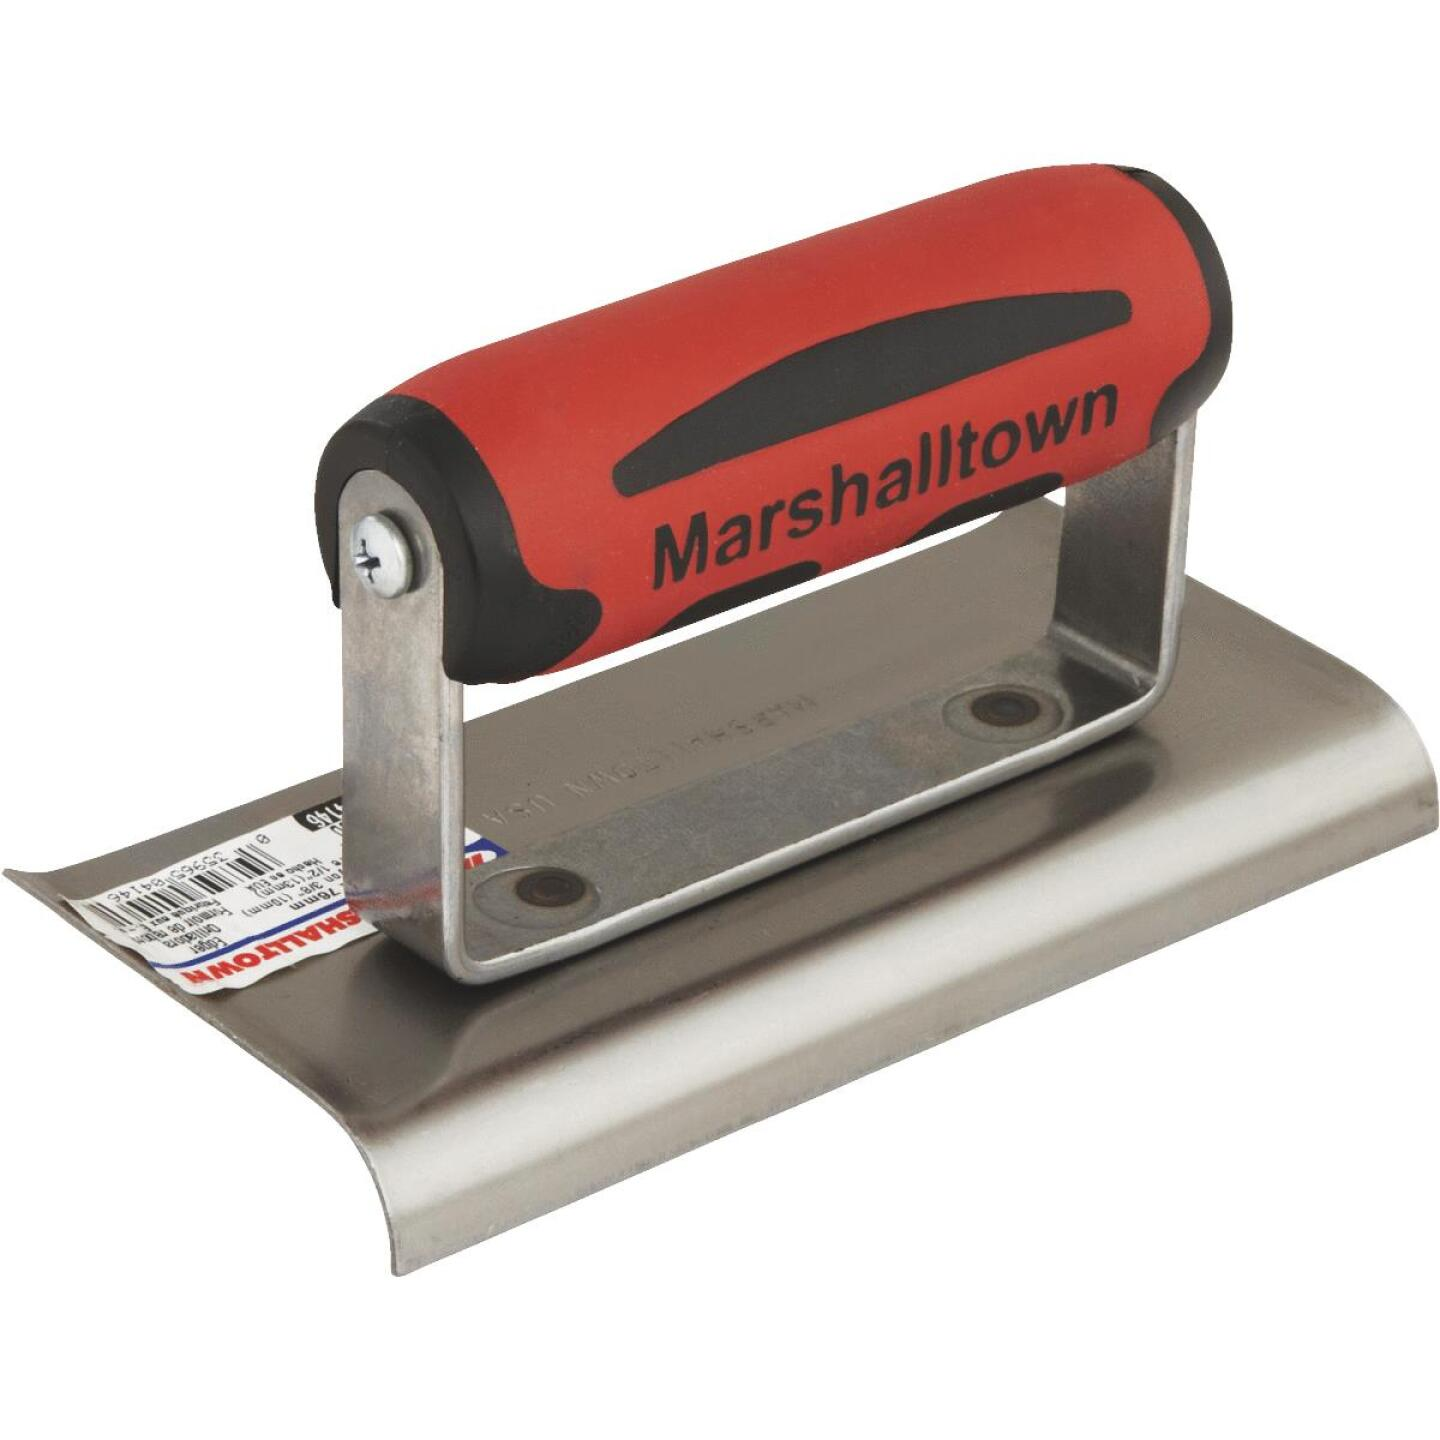 Marshalltown 6 In. x 3 In. Curved End Cement Edger Image 1